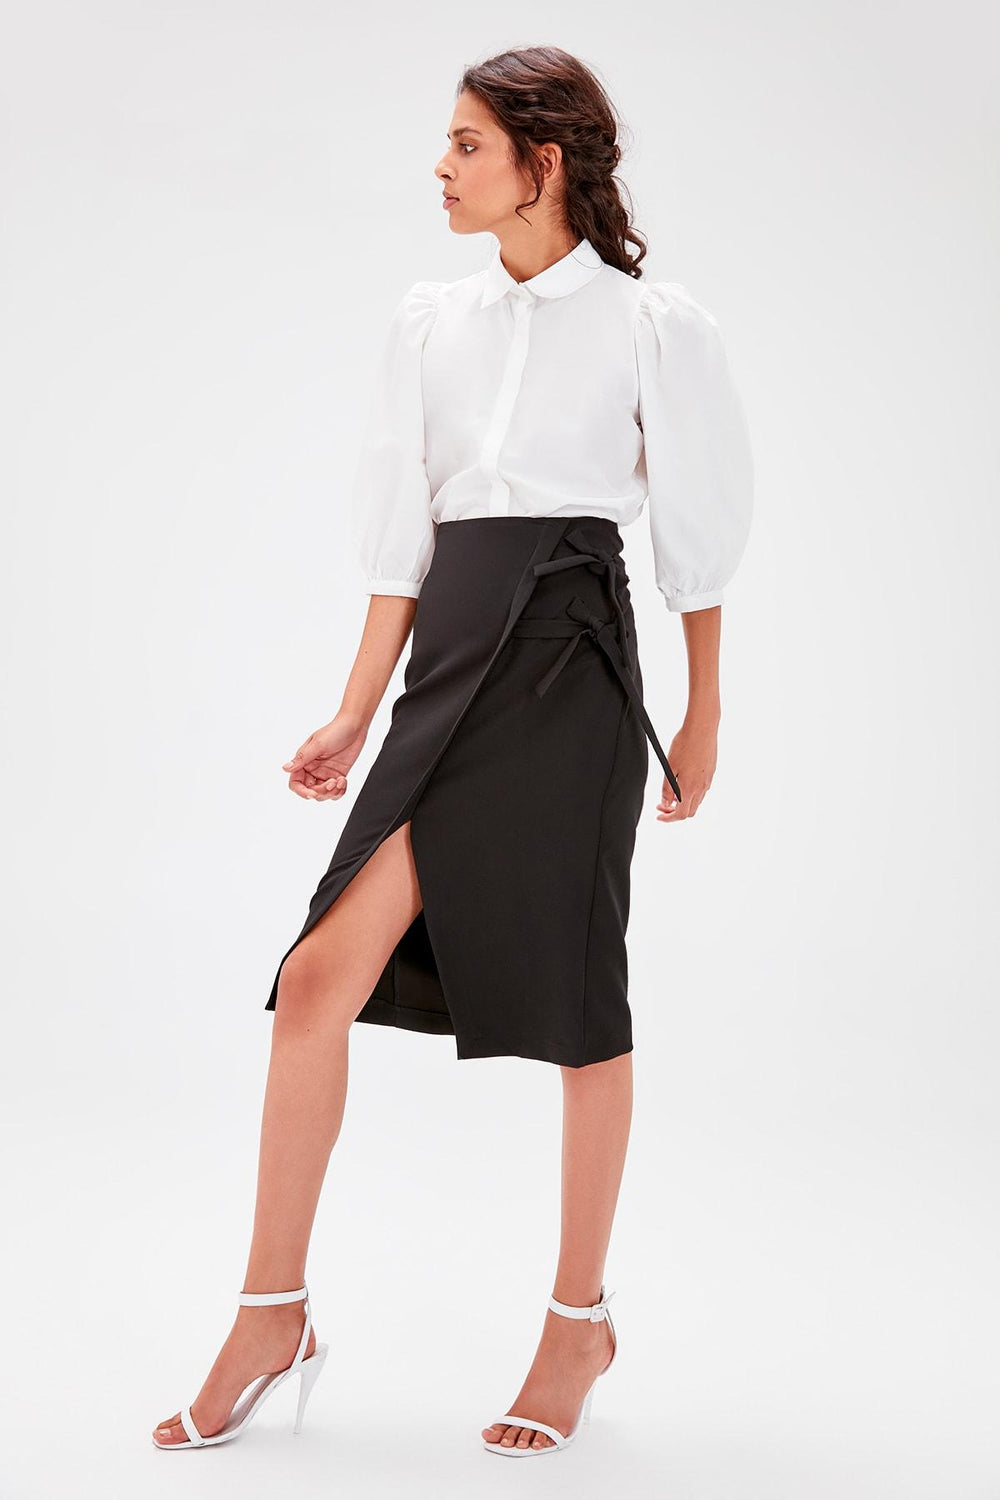 Miss Zut Miss Zut Black Lacing Detaylu0131 Skirt Miss Zut &CO